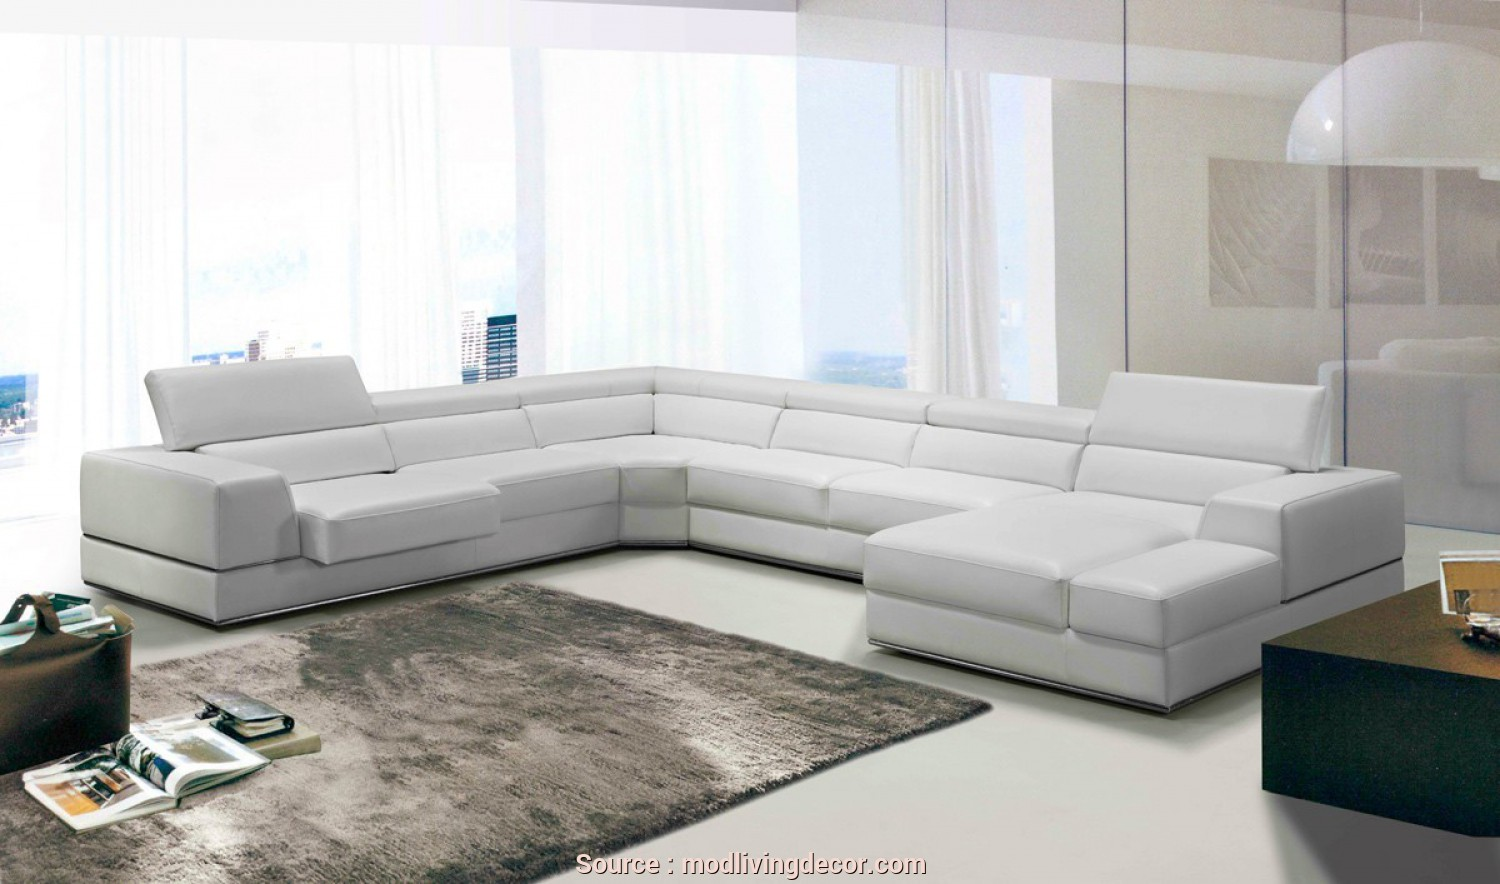 Divano Sofa Italia, Deale Divani Casa Pella Modern White Italian Leather Sectional Sofa